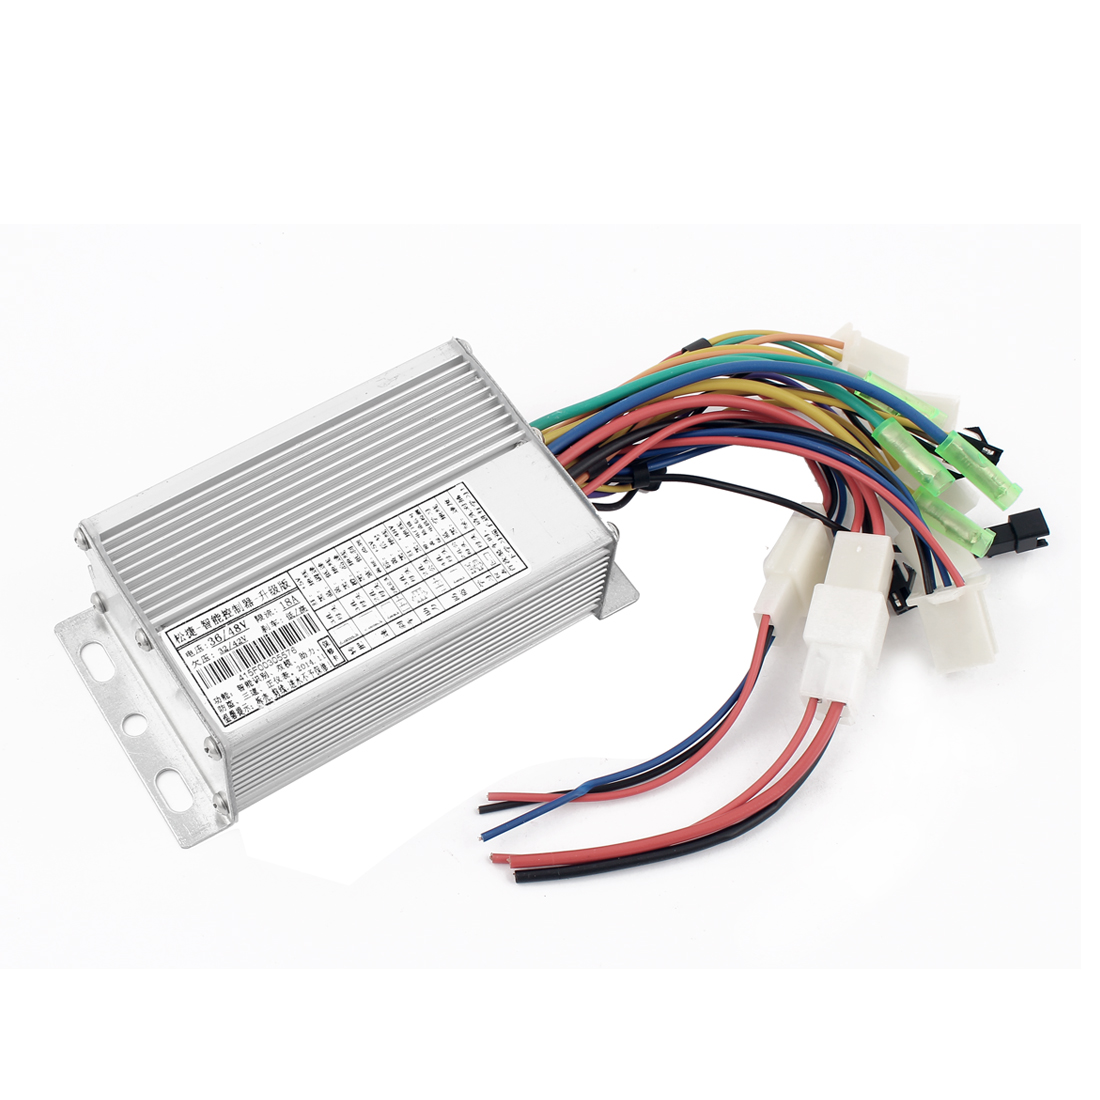 DC 36/48V 250W Electromobile Low Level Brake Brushless Motor Speed Controller